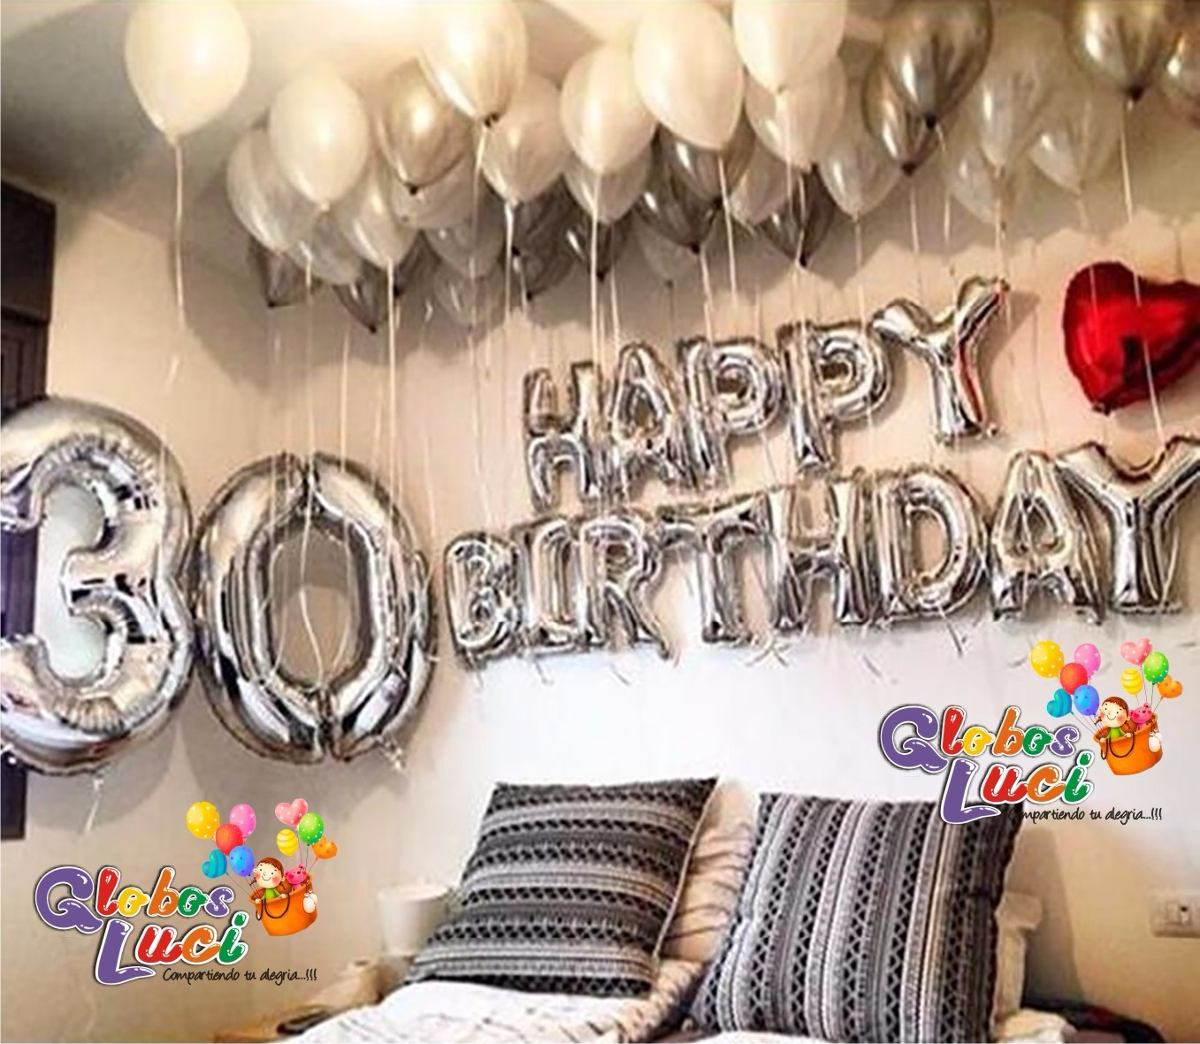 Donde Comprar Letras Para Decorar Globos Letras Metalicos Happy Birthday S 20 00 En